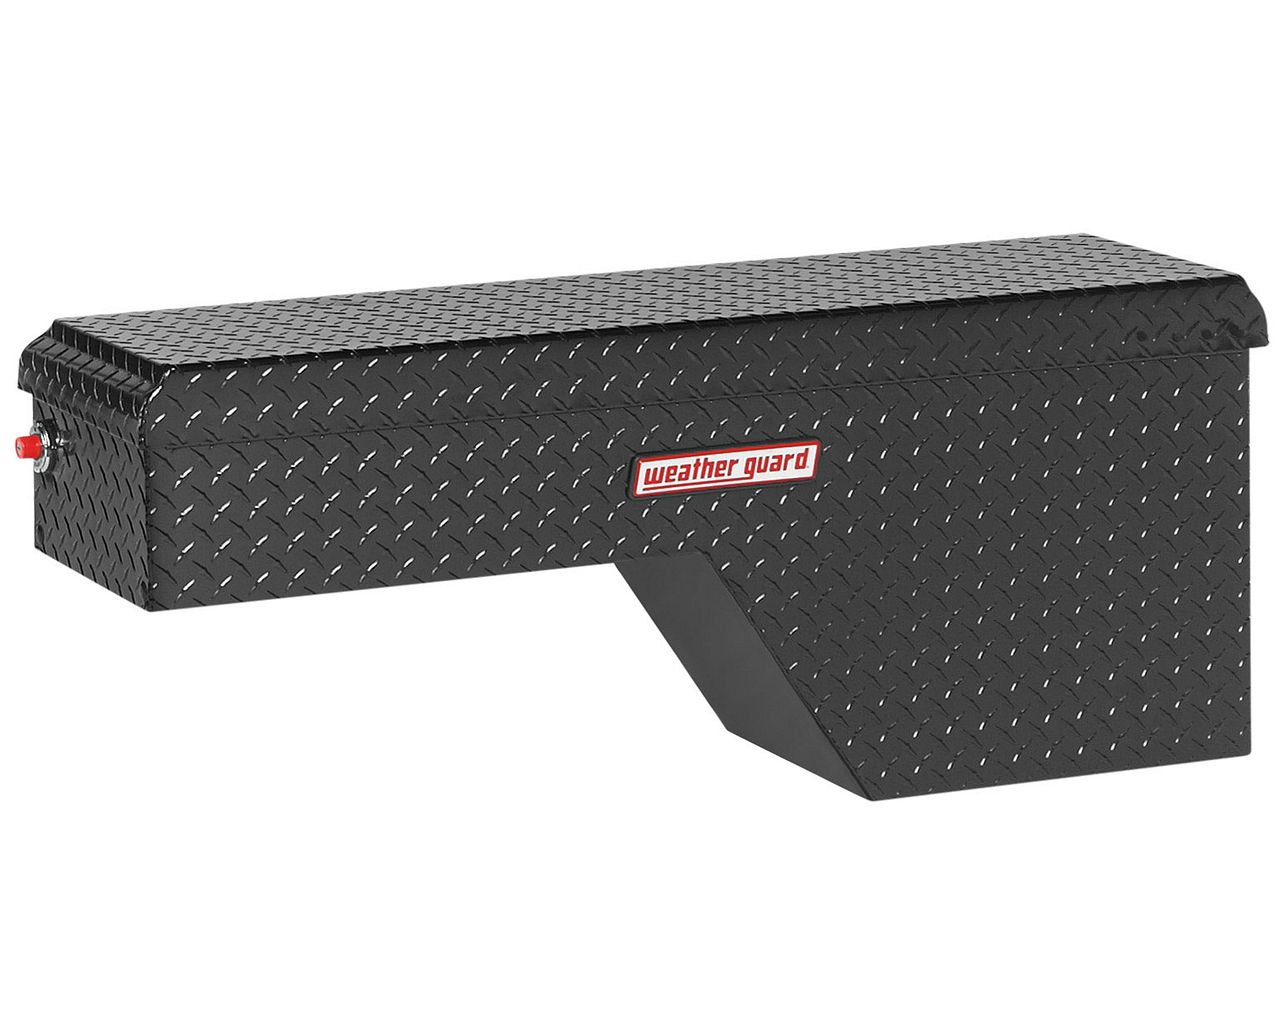 Weather Guard 173-5-01 Pork Chop Box, Aluminum, Passenger Side